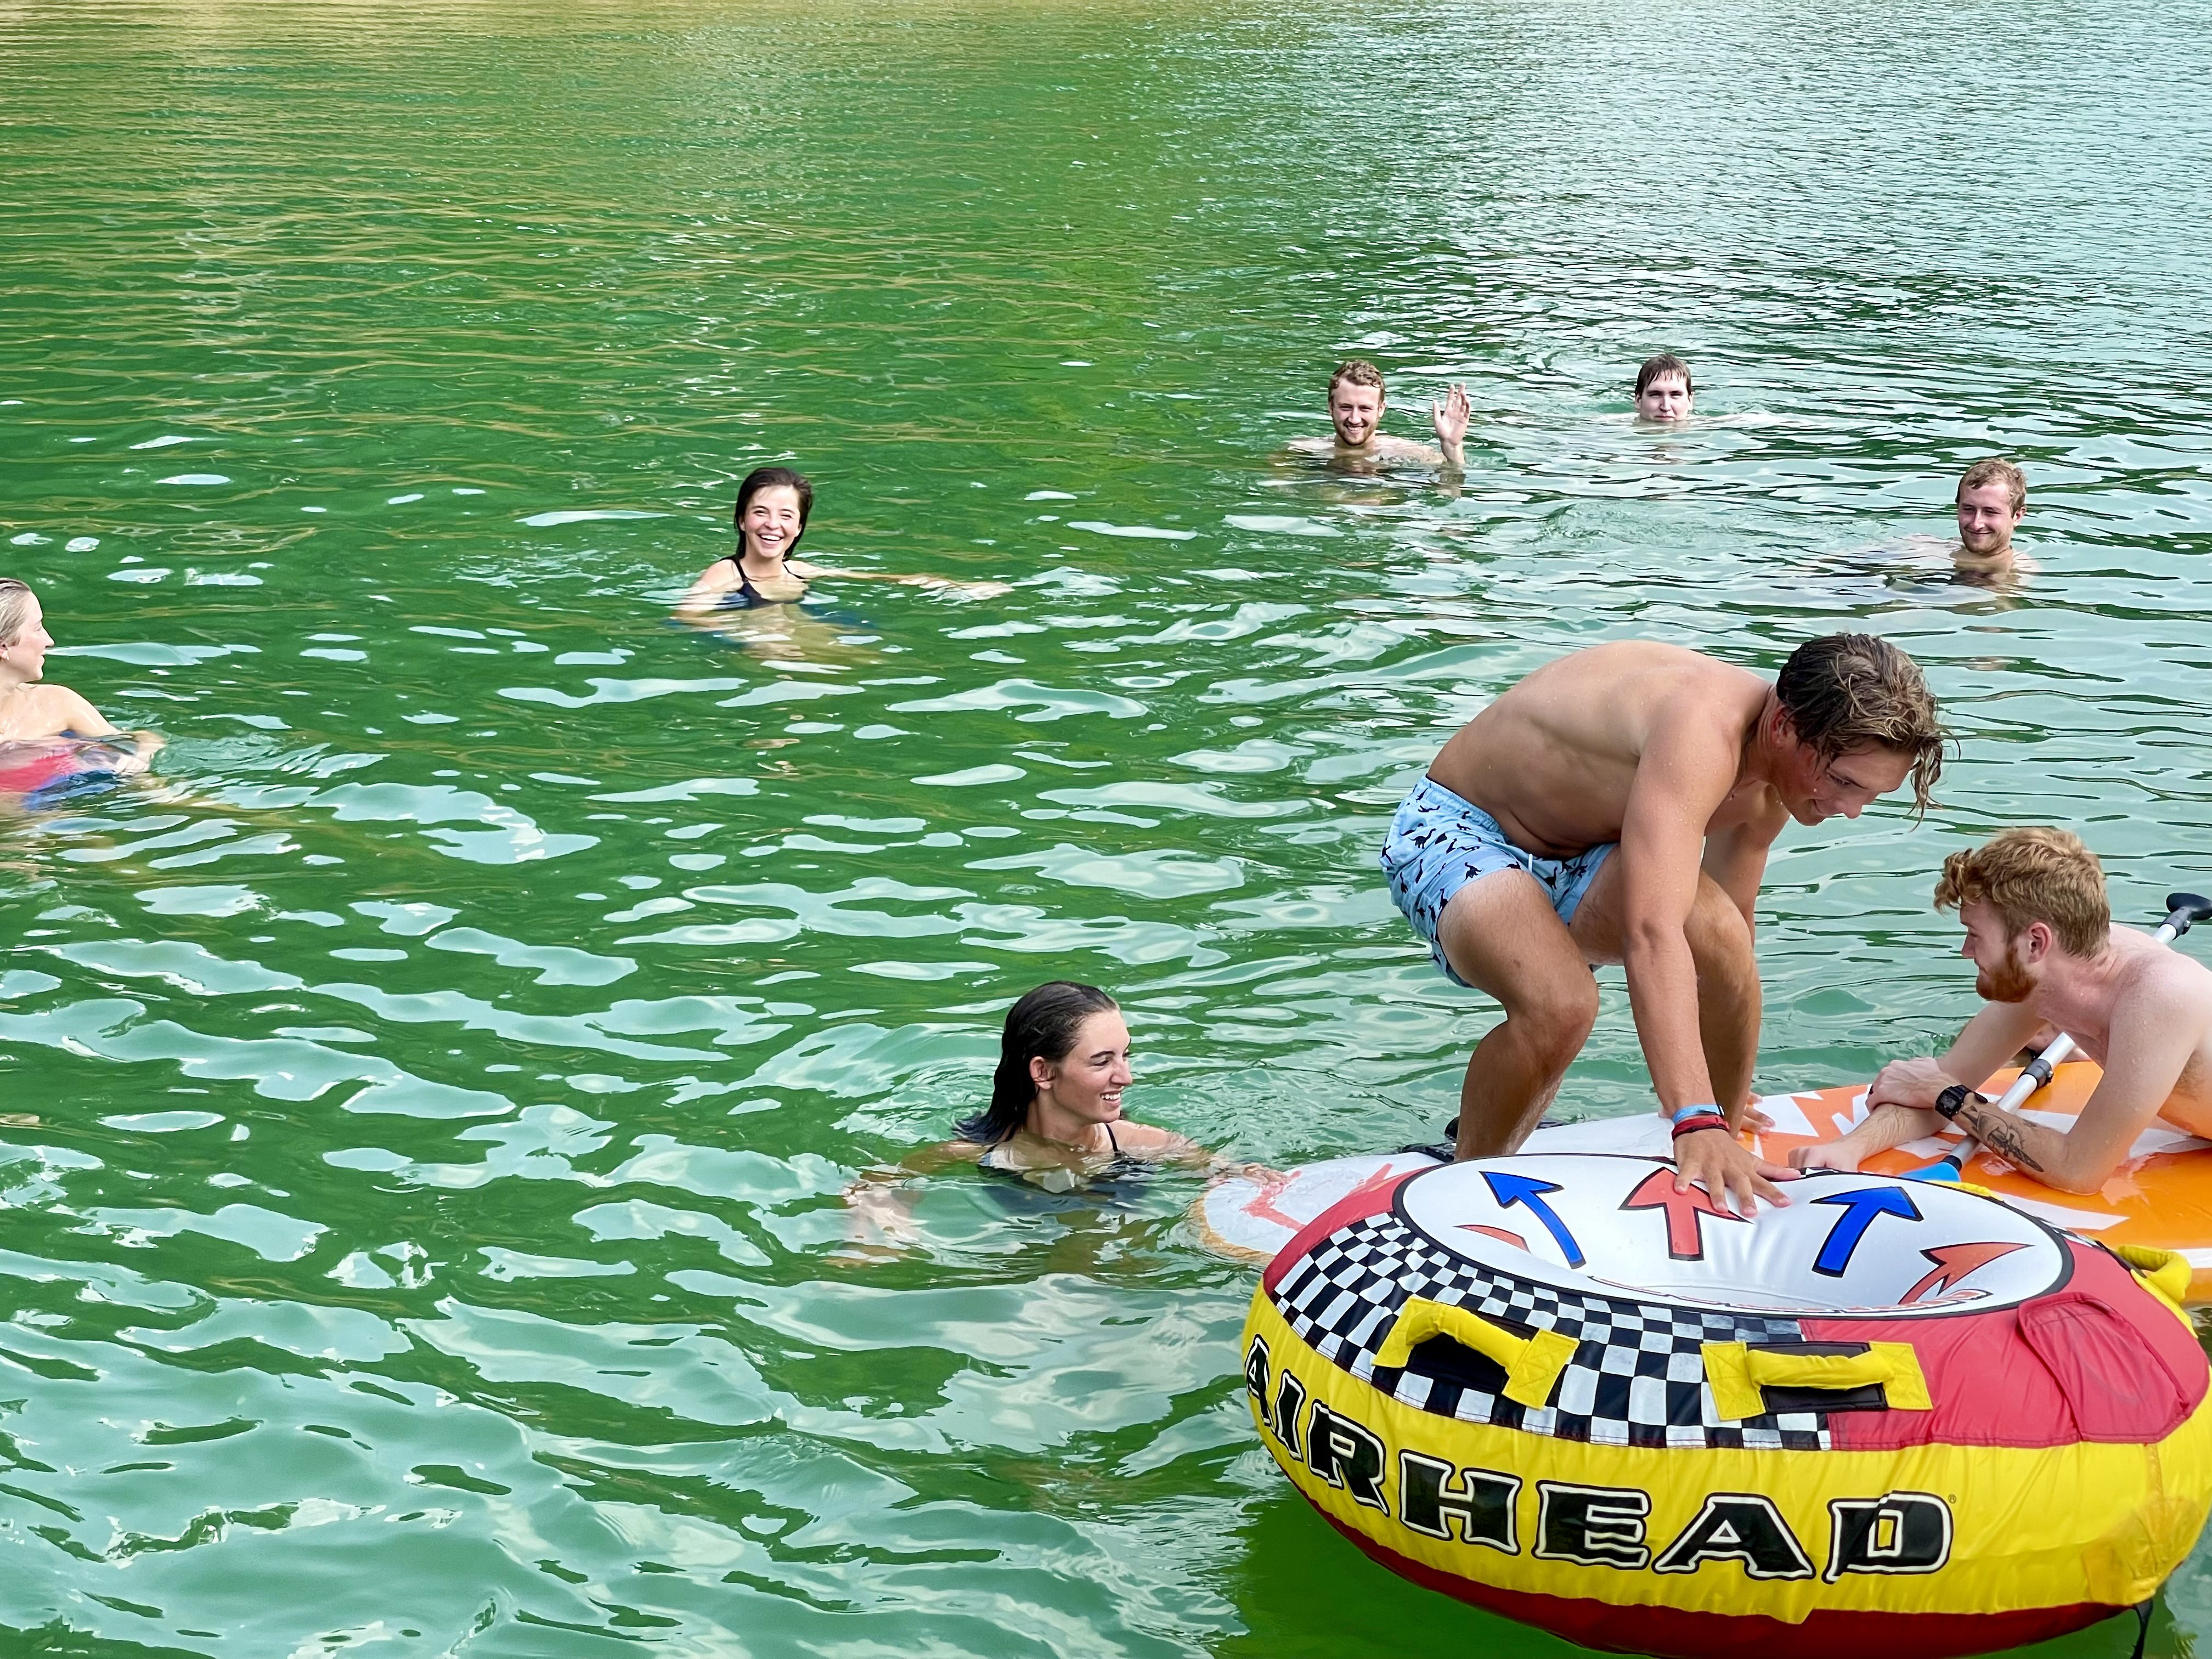 young adults playing at the lake on a water tube